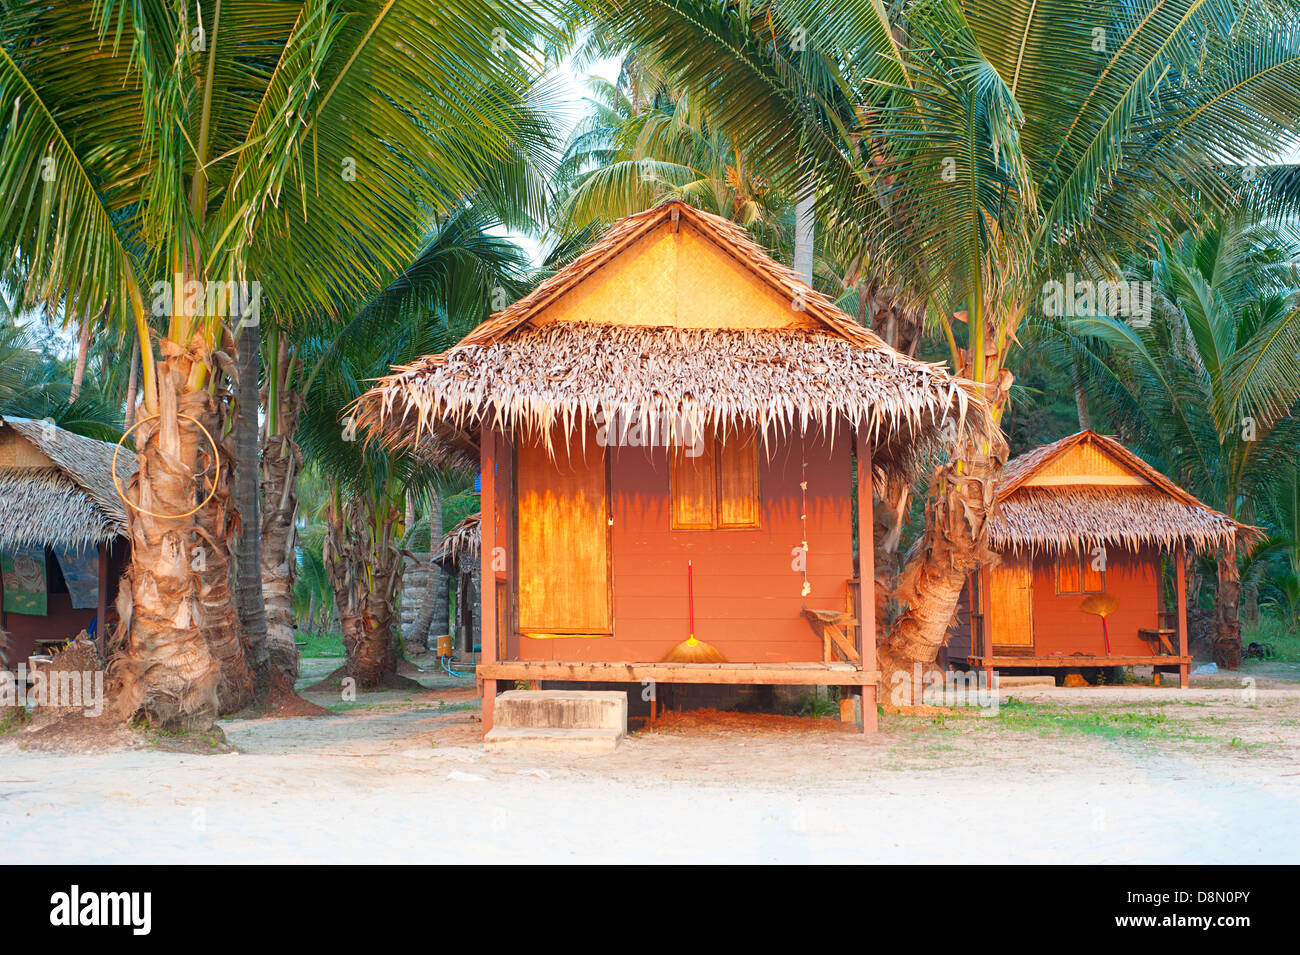 Bamboo Bungalow On The Beach Of Koh Chang Island Thailand